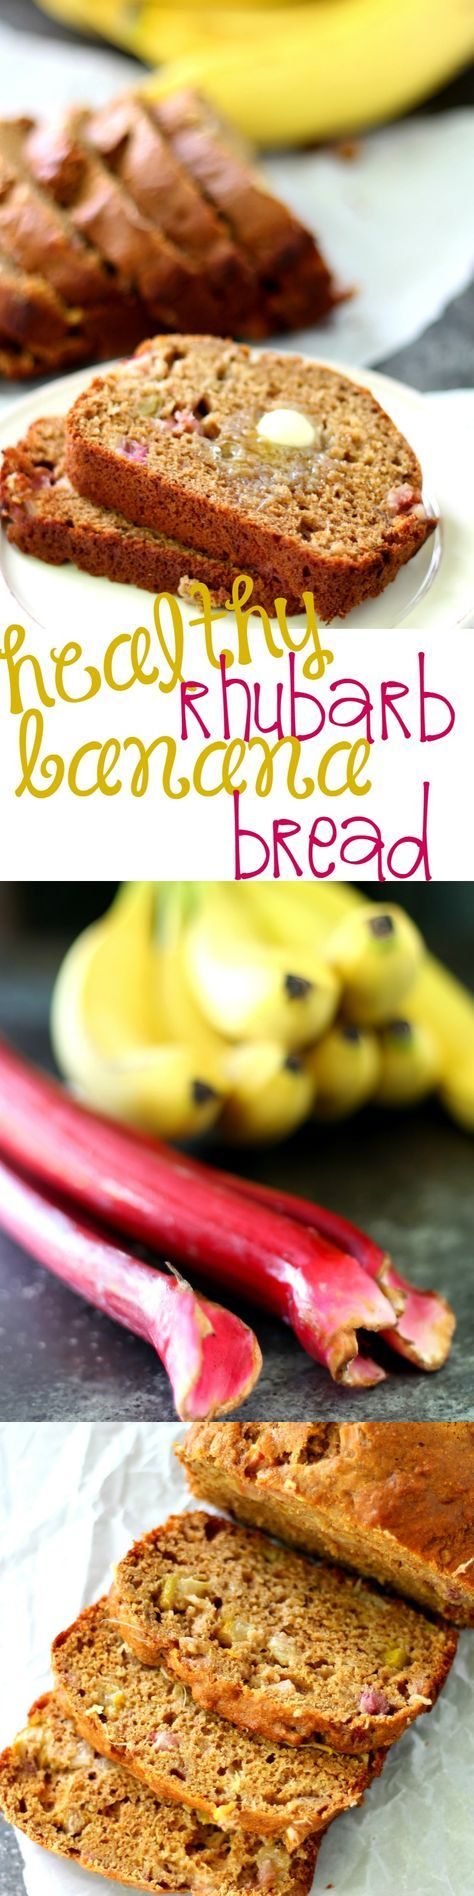 Healthy Rhubarb Banana Bread recipe- this whole grain quick bread recipe is beyond delicious. The combination of rhubarb and banana is incredible. Each slice is just over 100 calories, so feel free to eat a ton! #ad